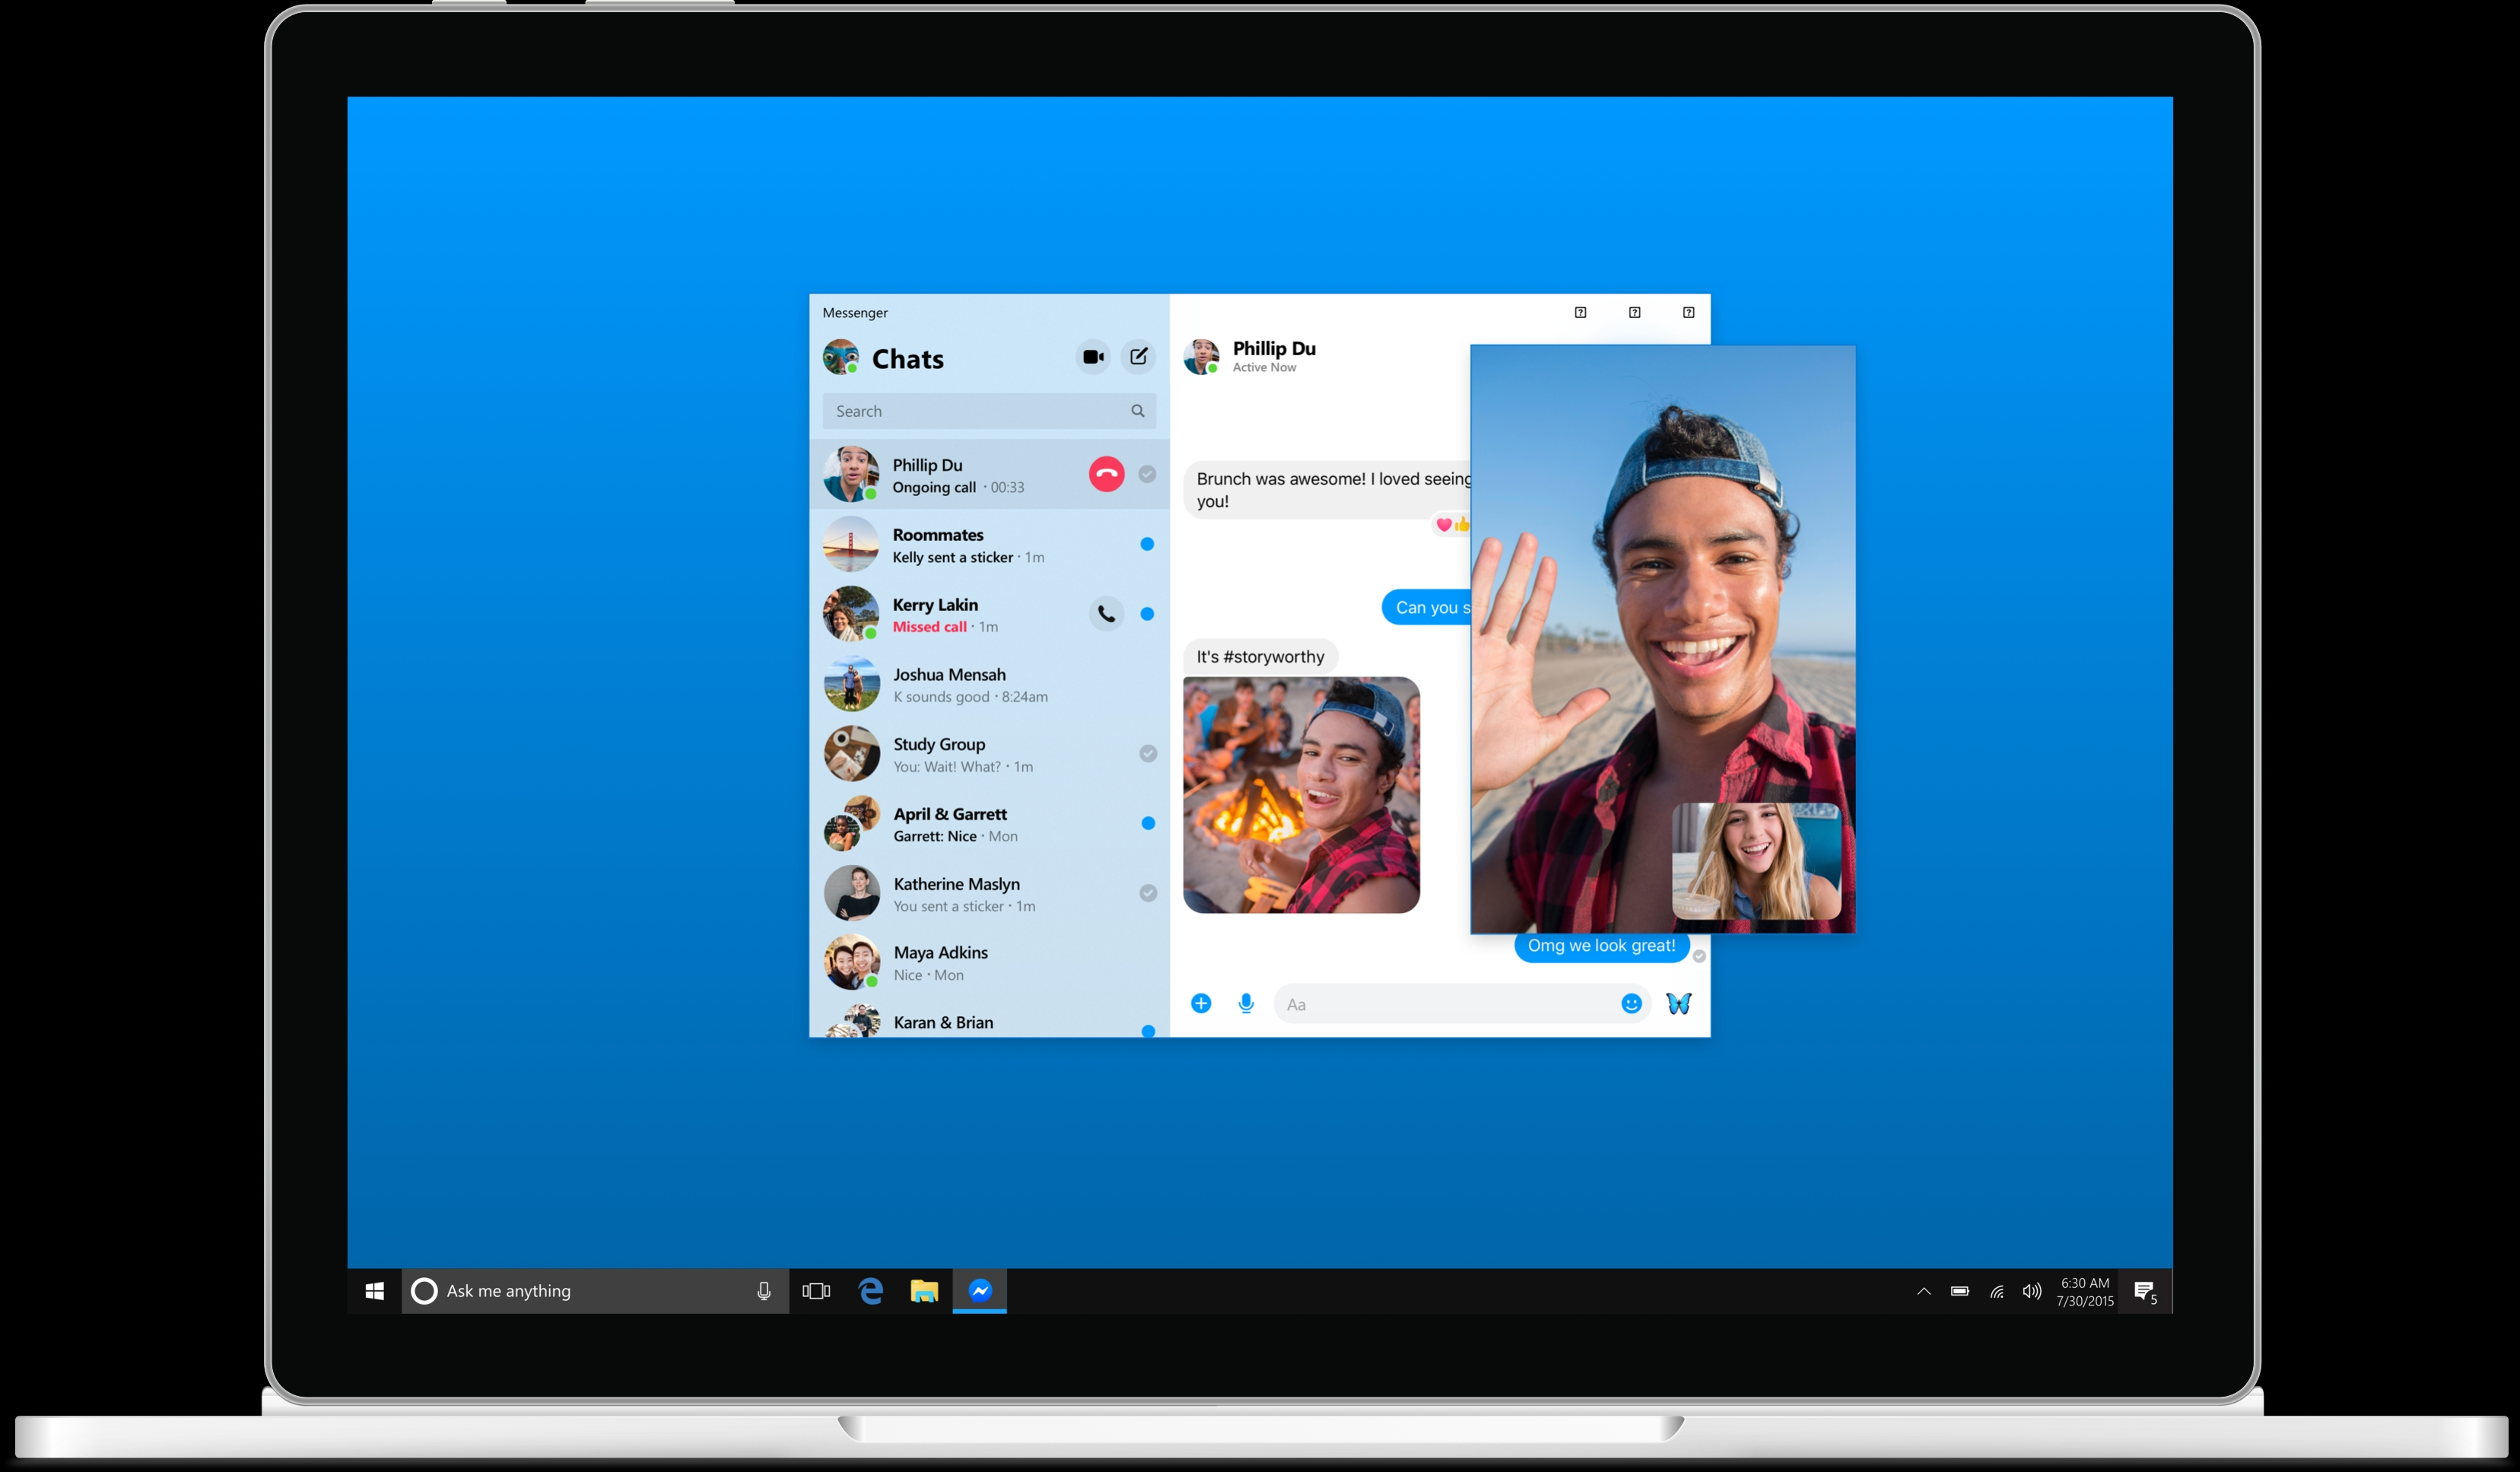 The new Facebook Messenger desktop app